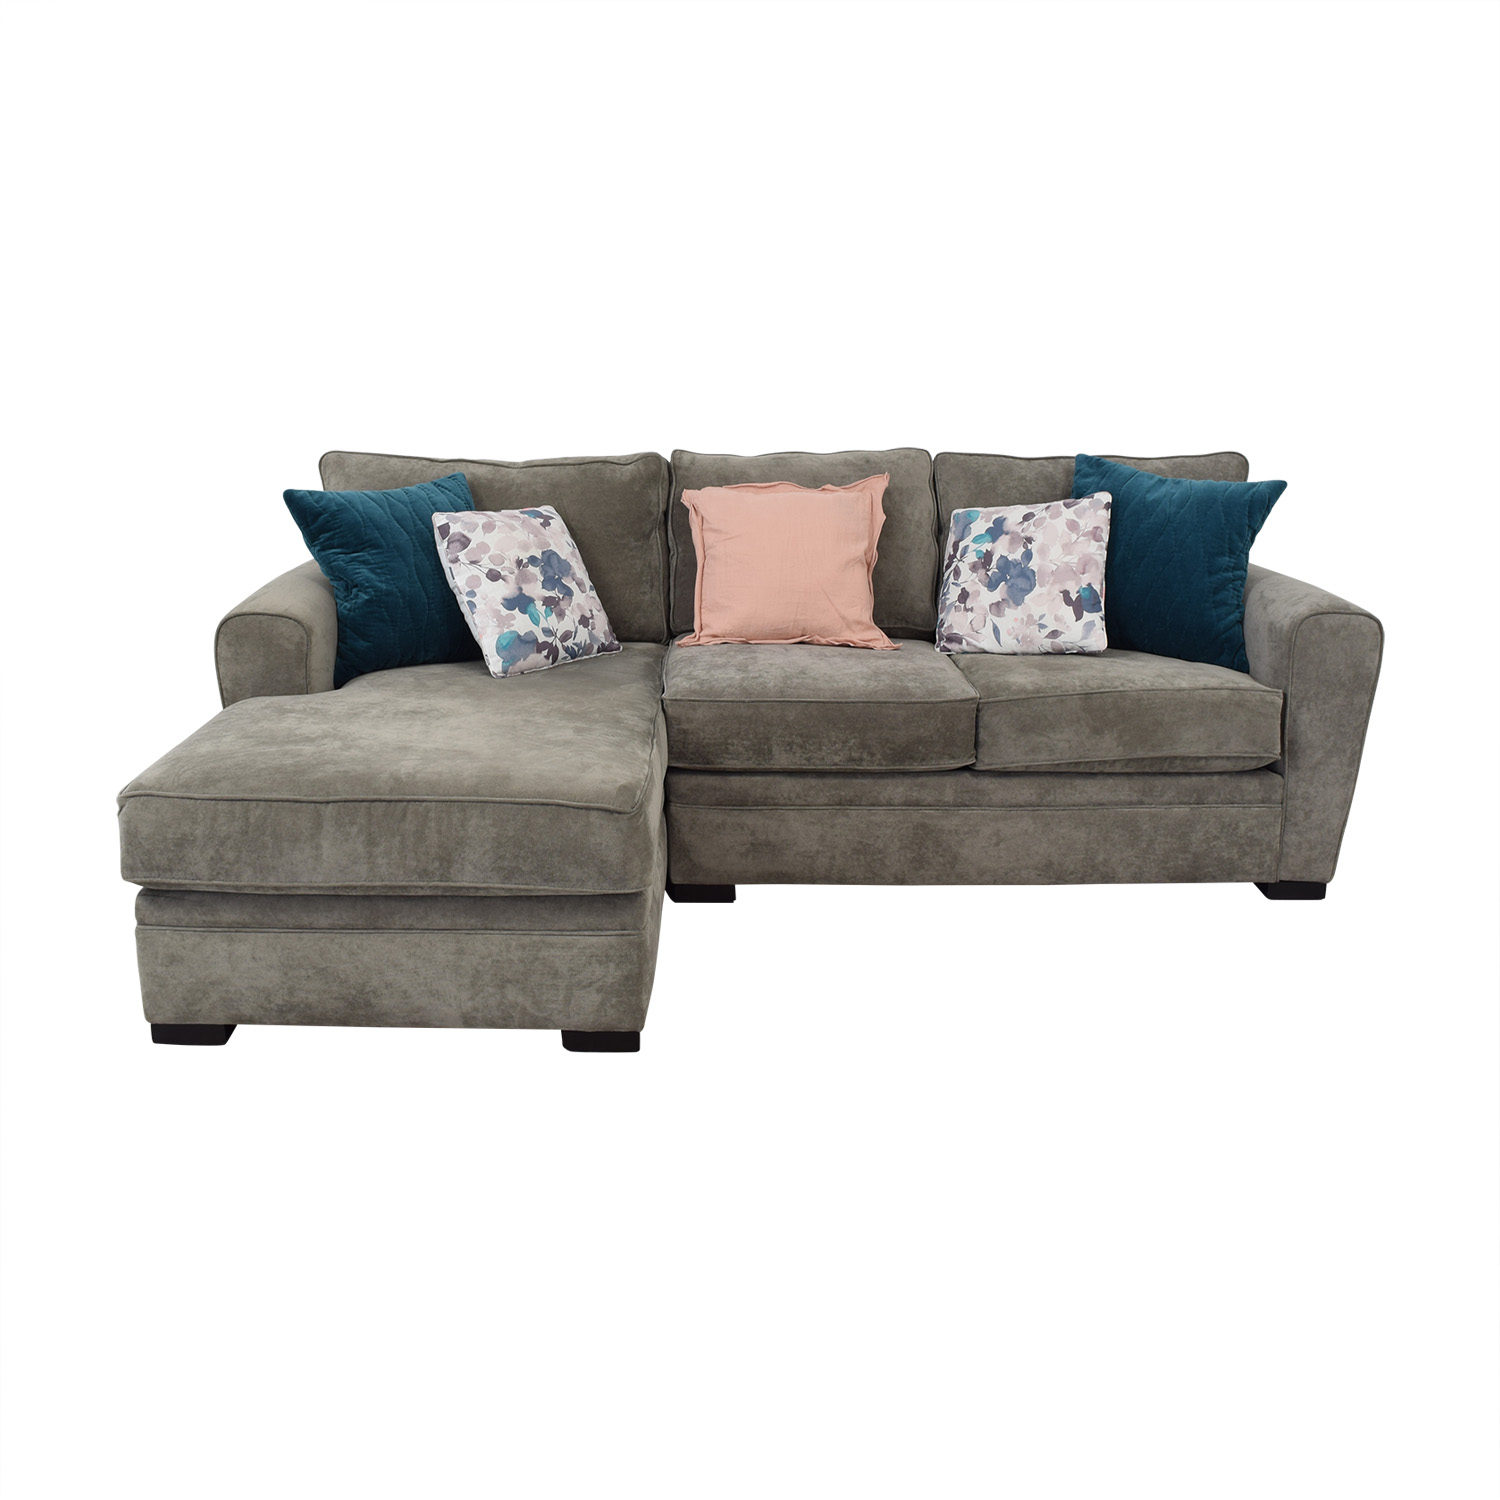 Raymour & Flanigan Raymour & Flanigan Two Piece Sectional Sofas